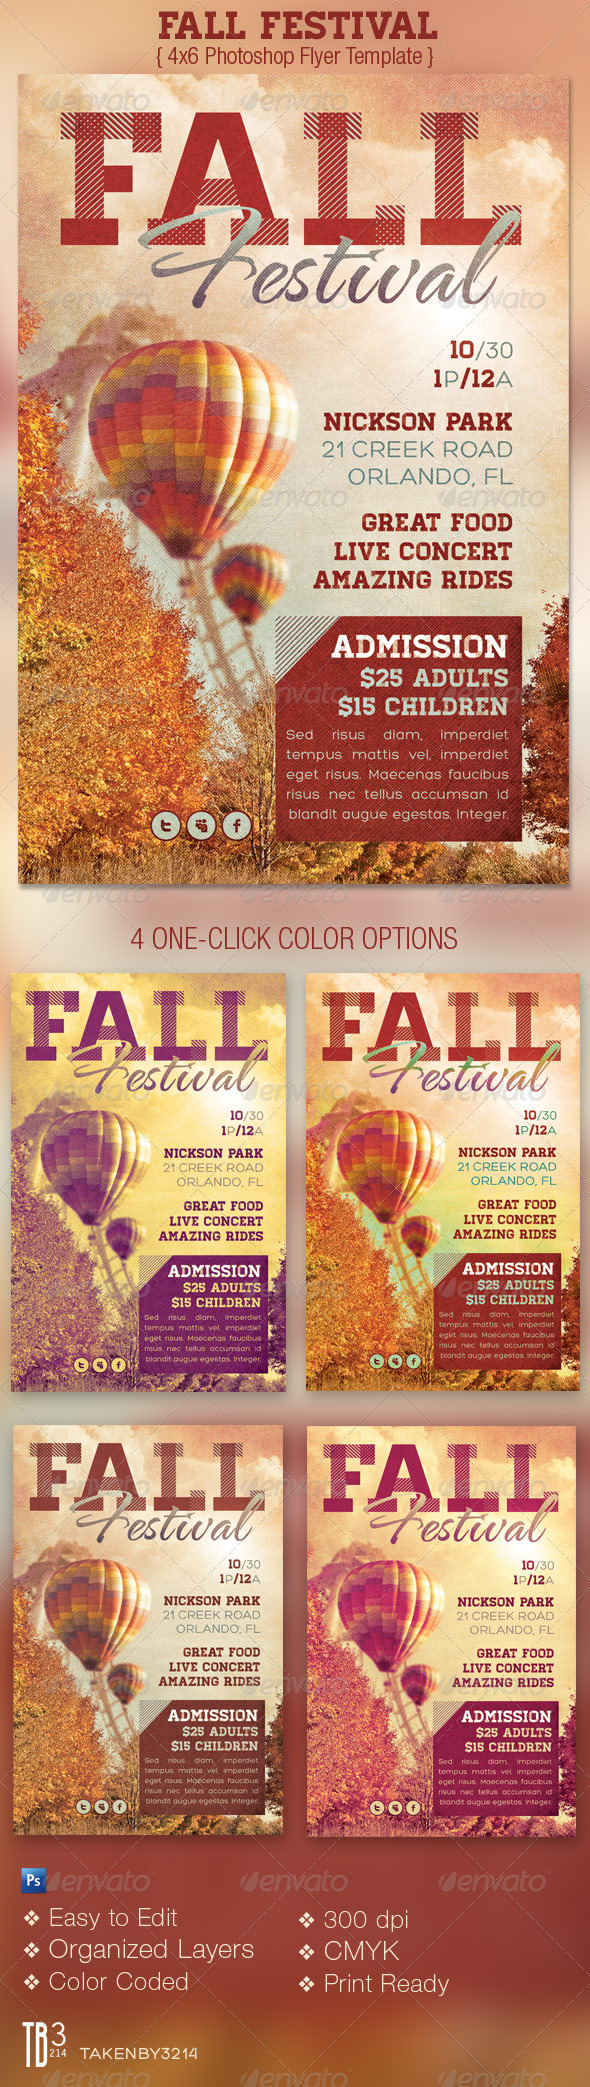 Fall Festival Event Flyer Template - Events Flyers